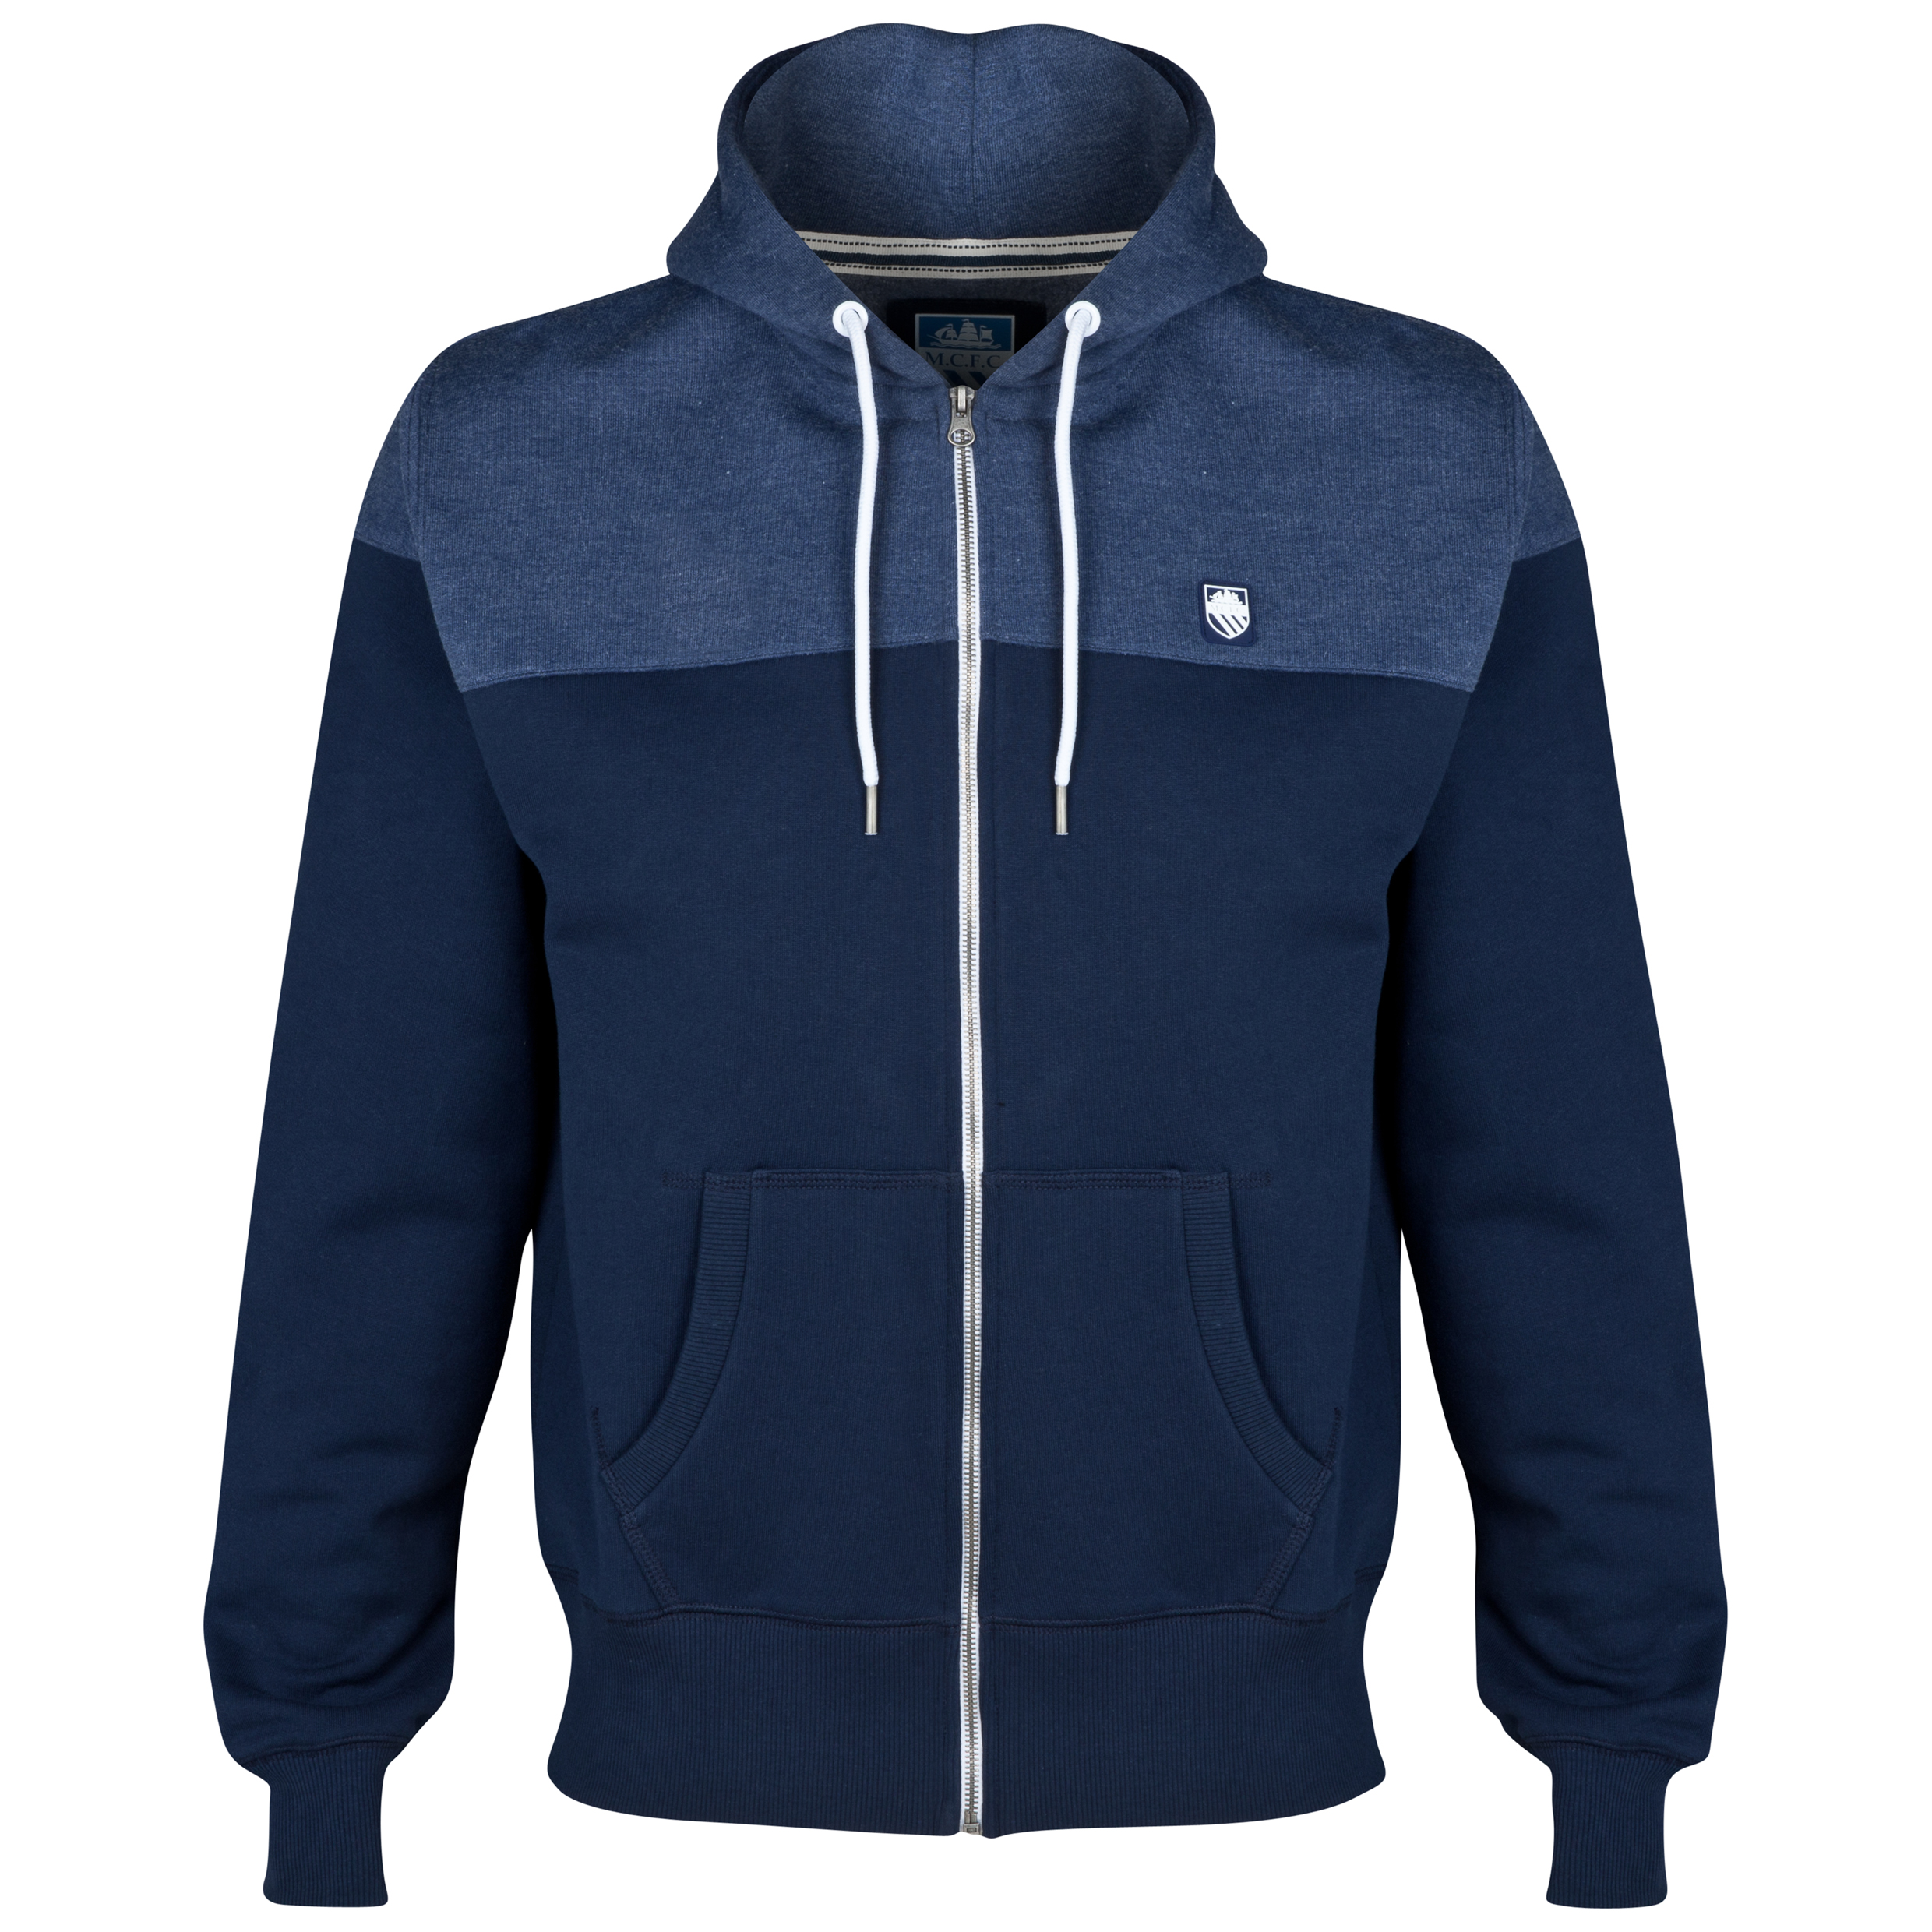 Manchester City Cross Hoodie-Mens Navy